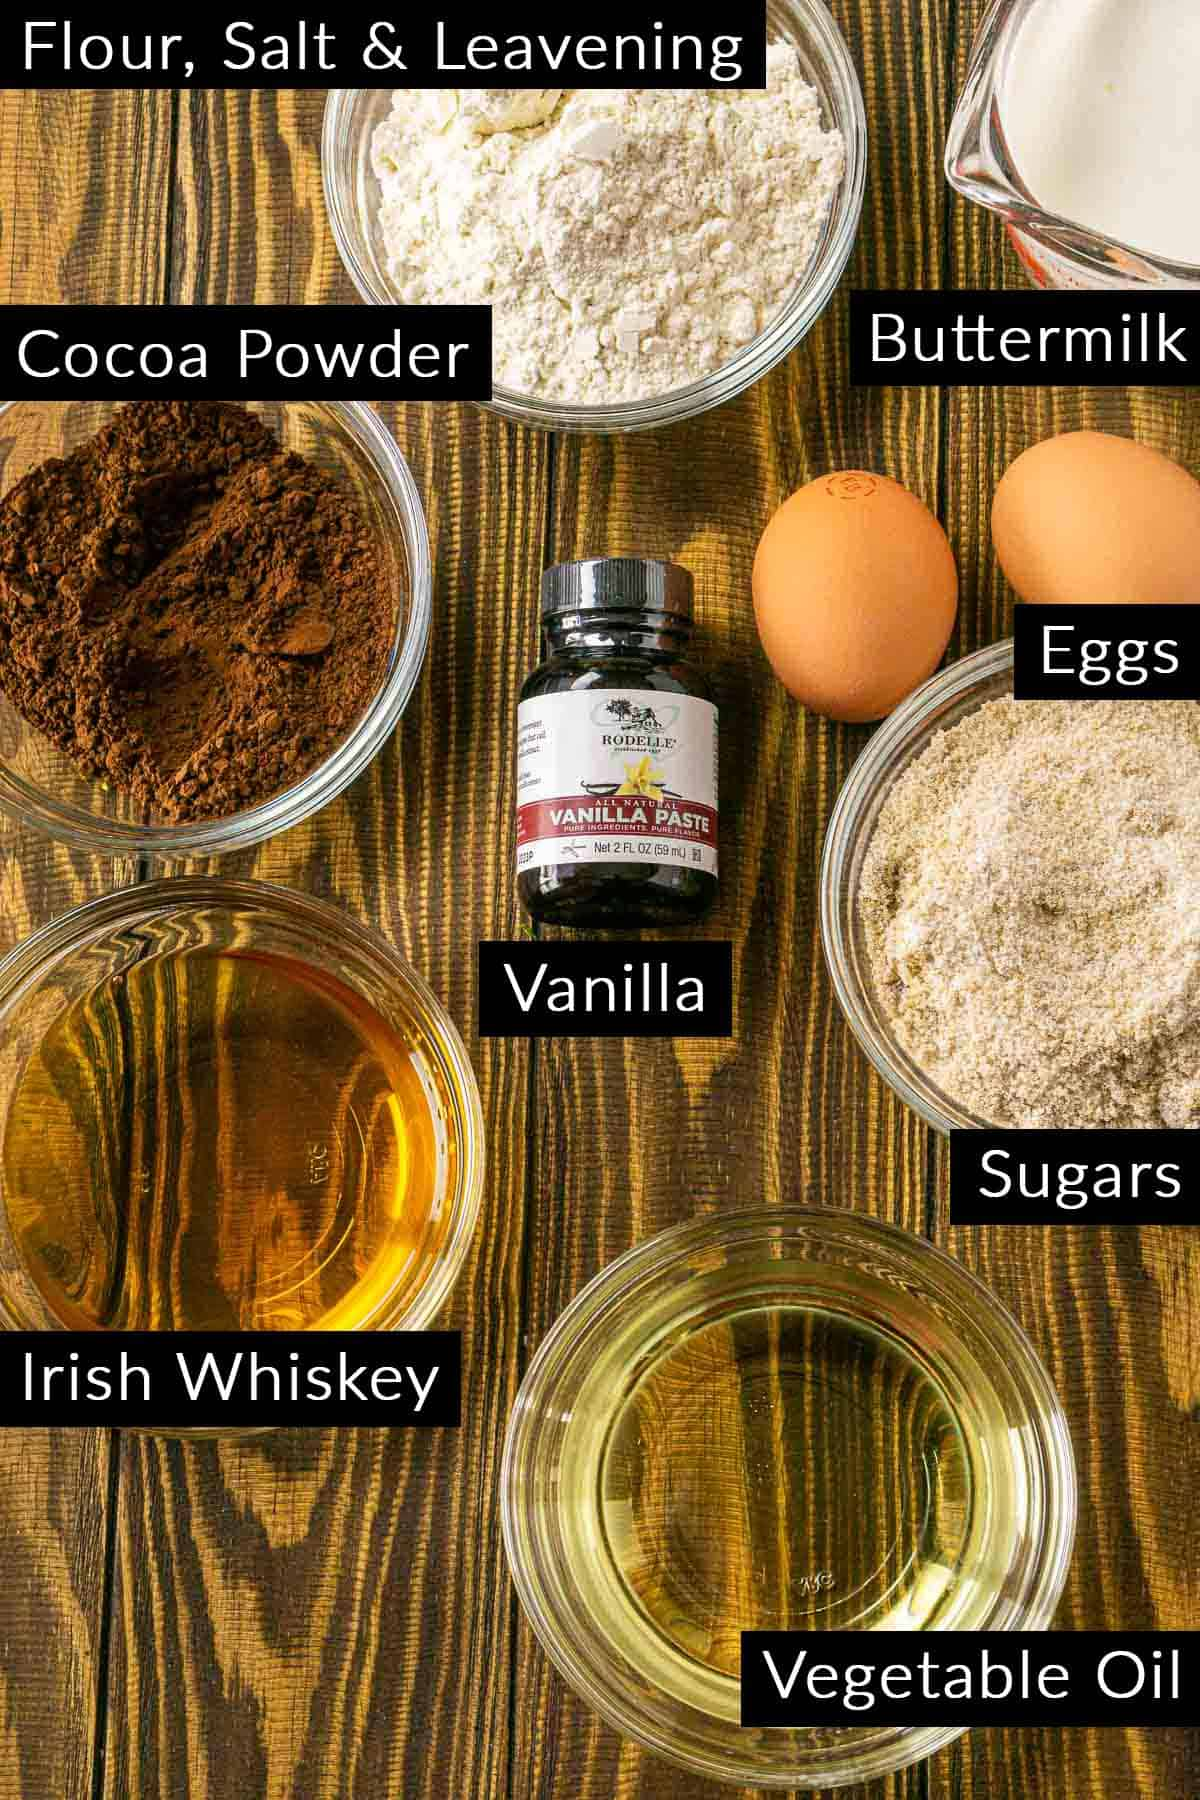 The Irish whiskey chocolate cake ingredients with labels on a wooden board.